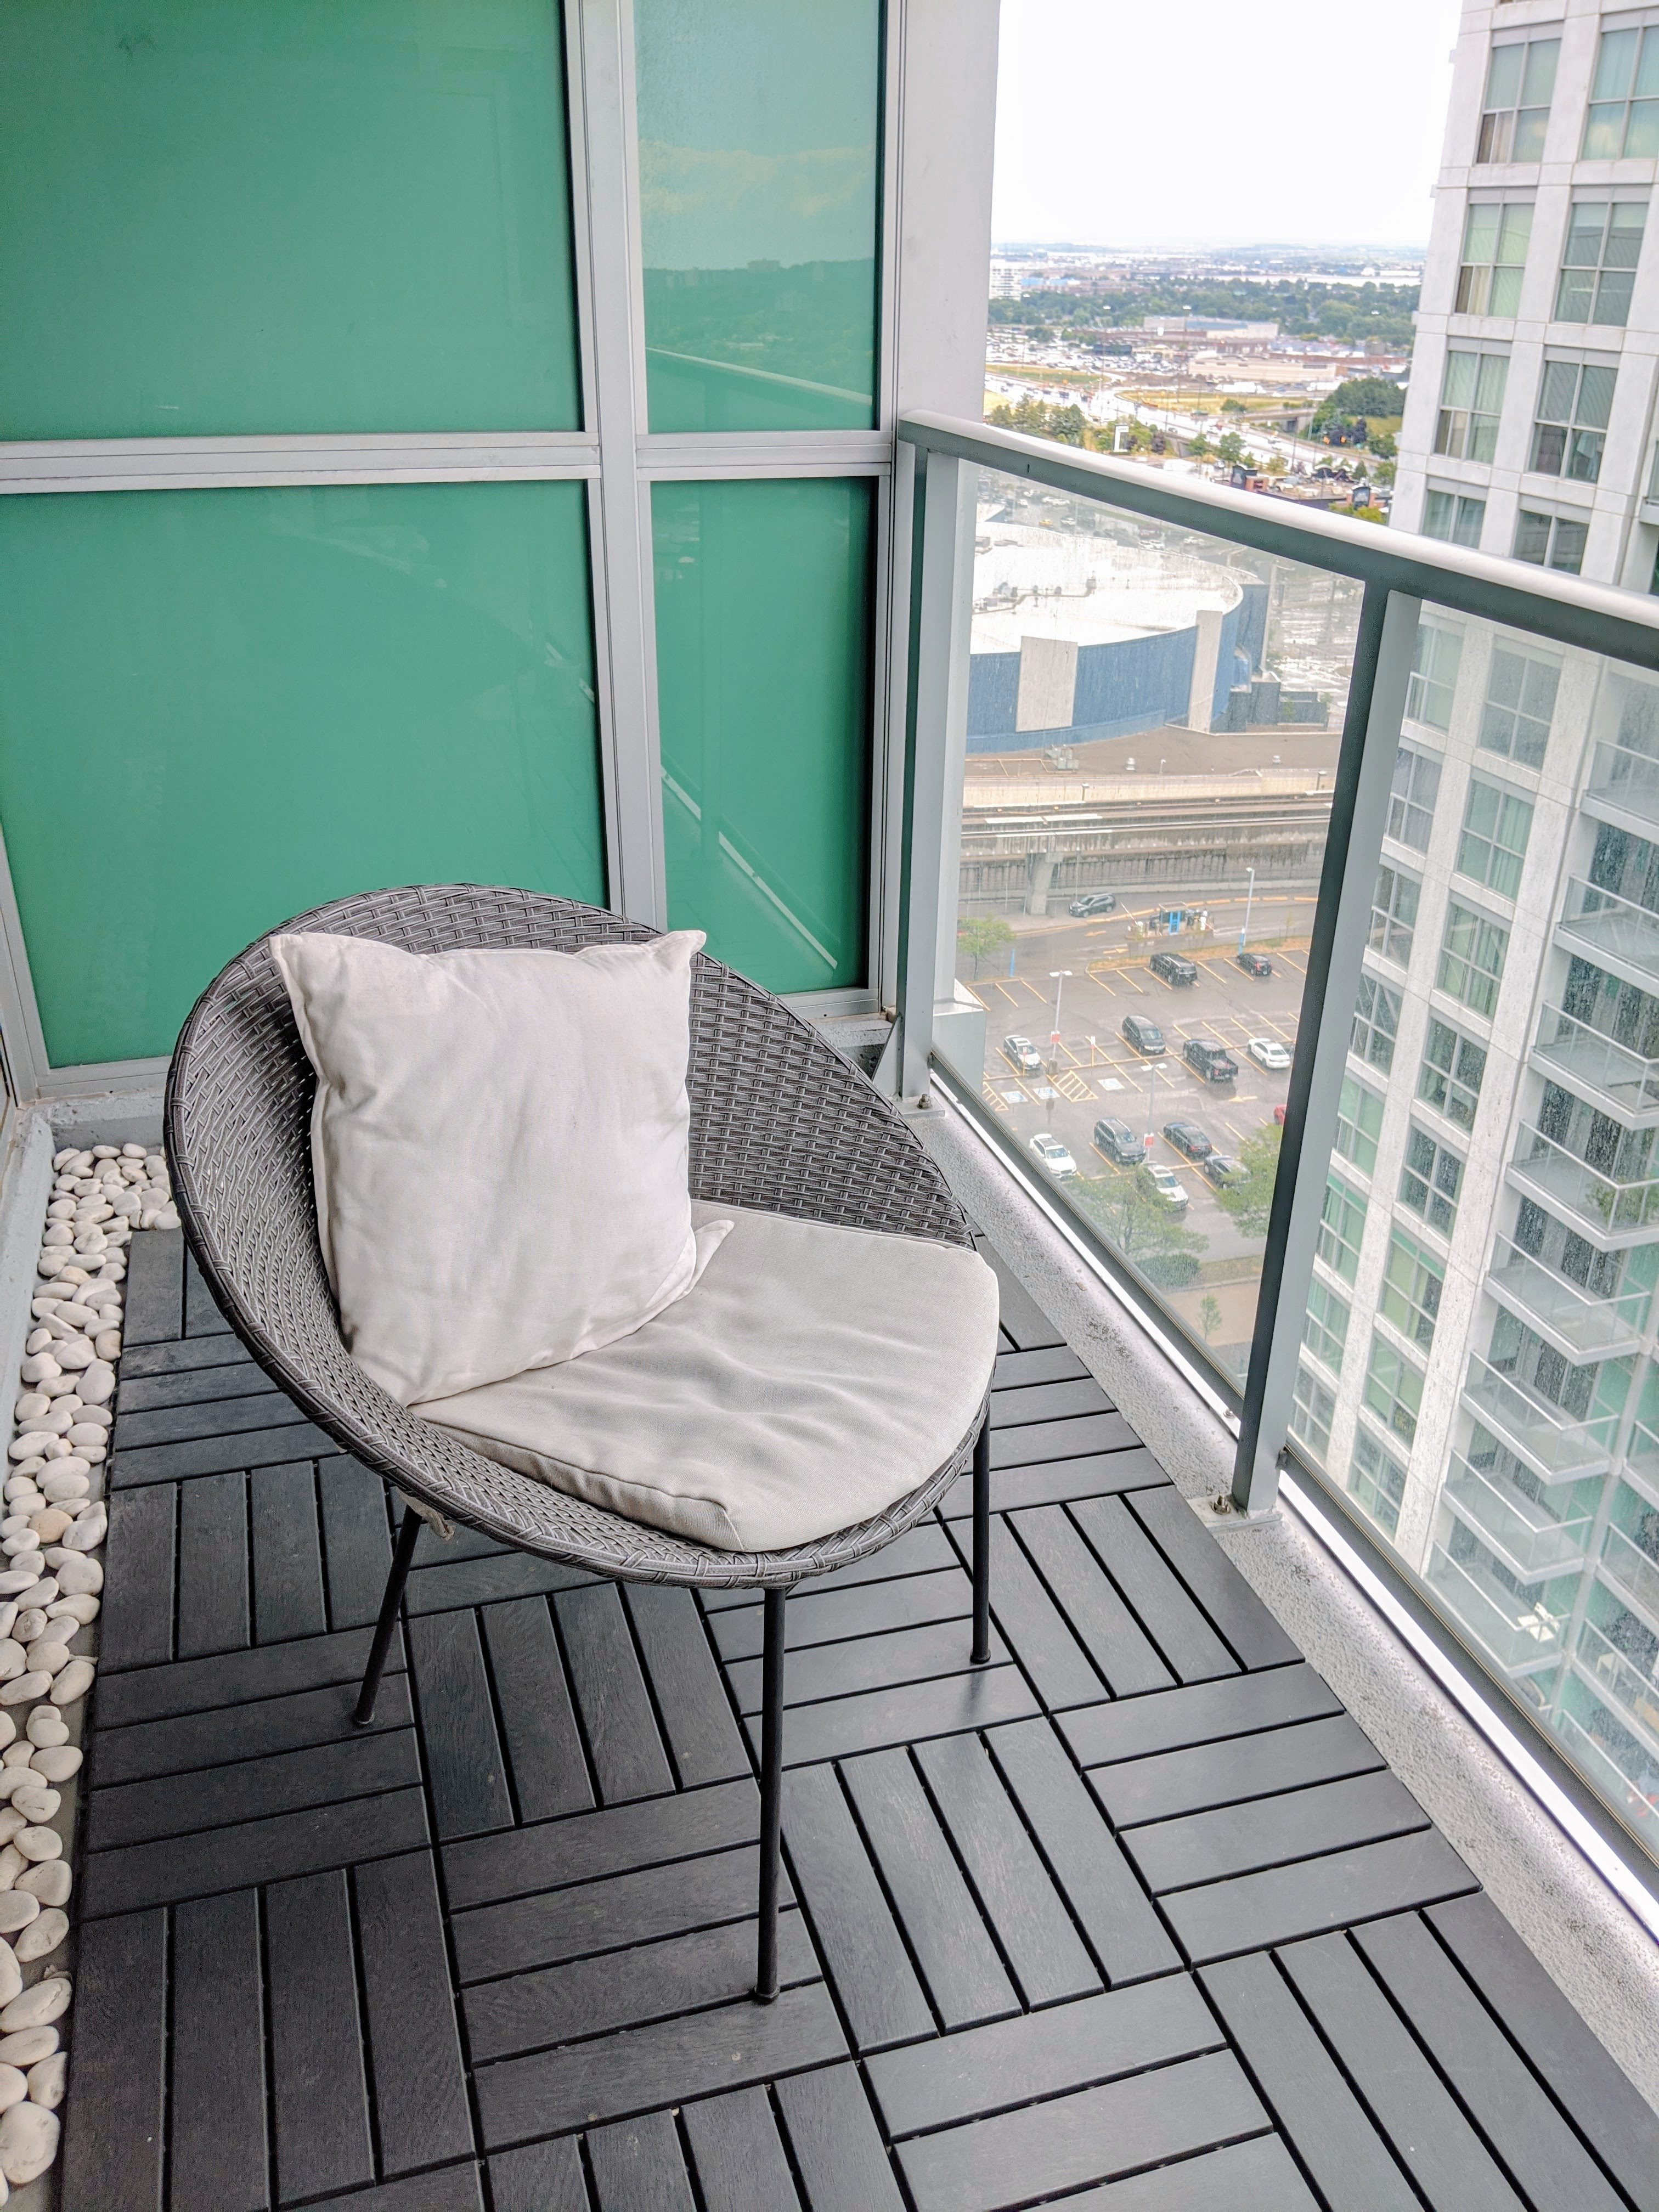 For Rent Scarborough Town Centre 1 Bedroom High Floor Condo Available W 2 Weeks Notice For Sale Redflagdeals Com Forums